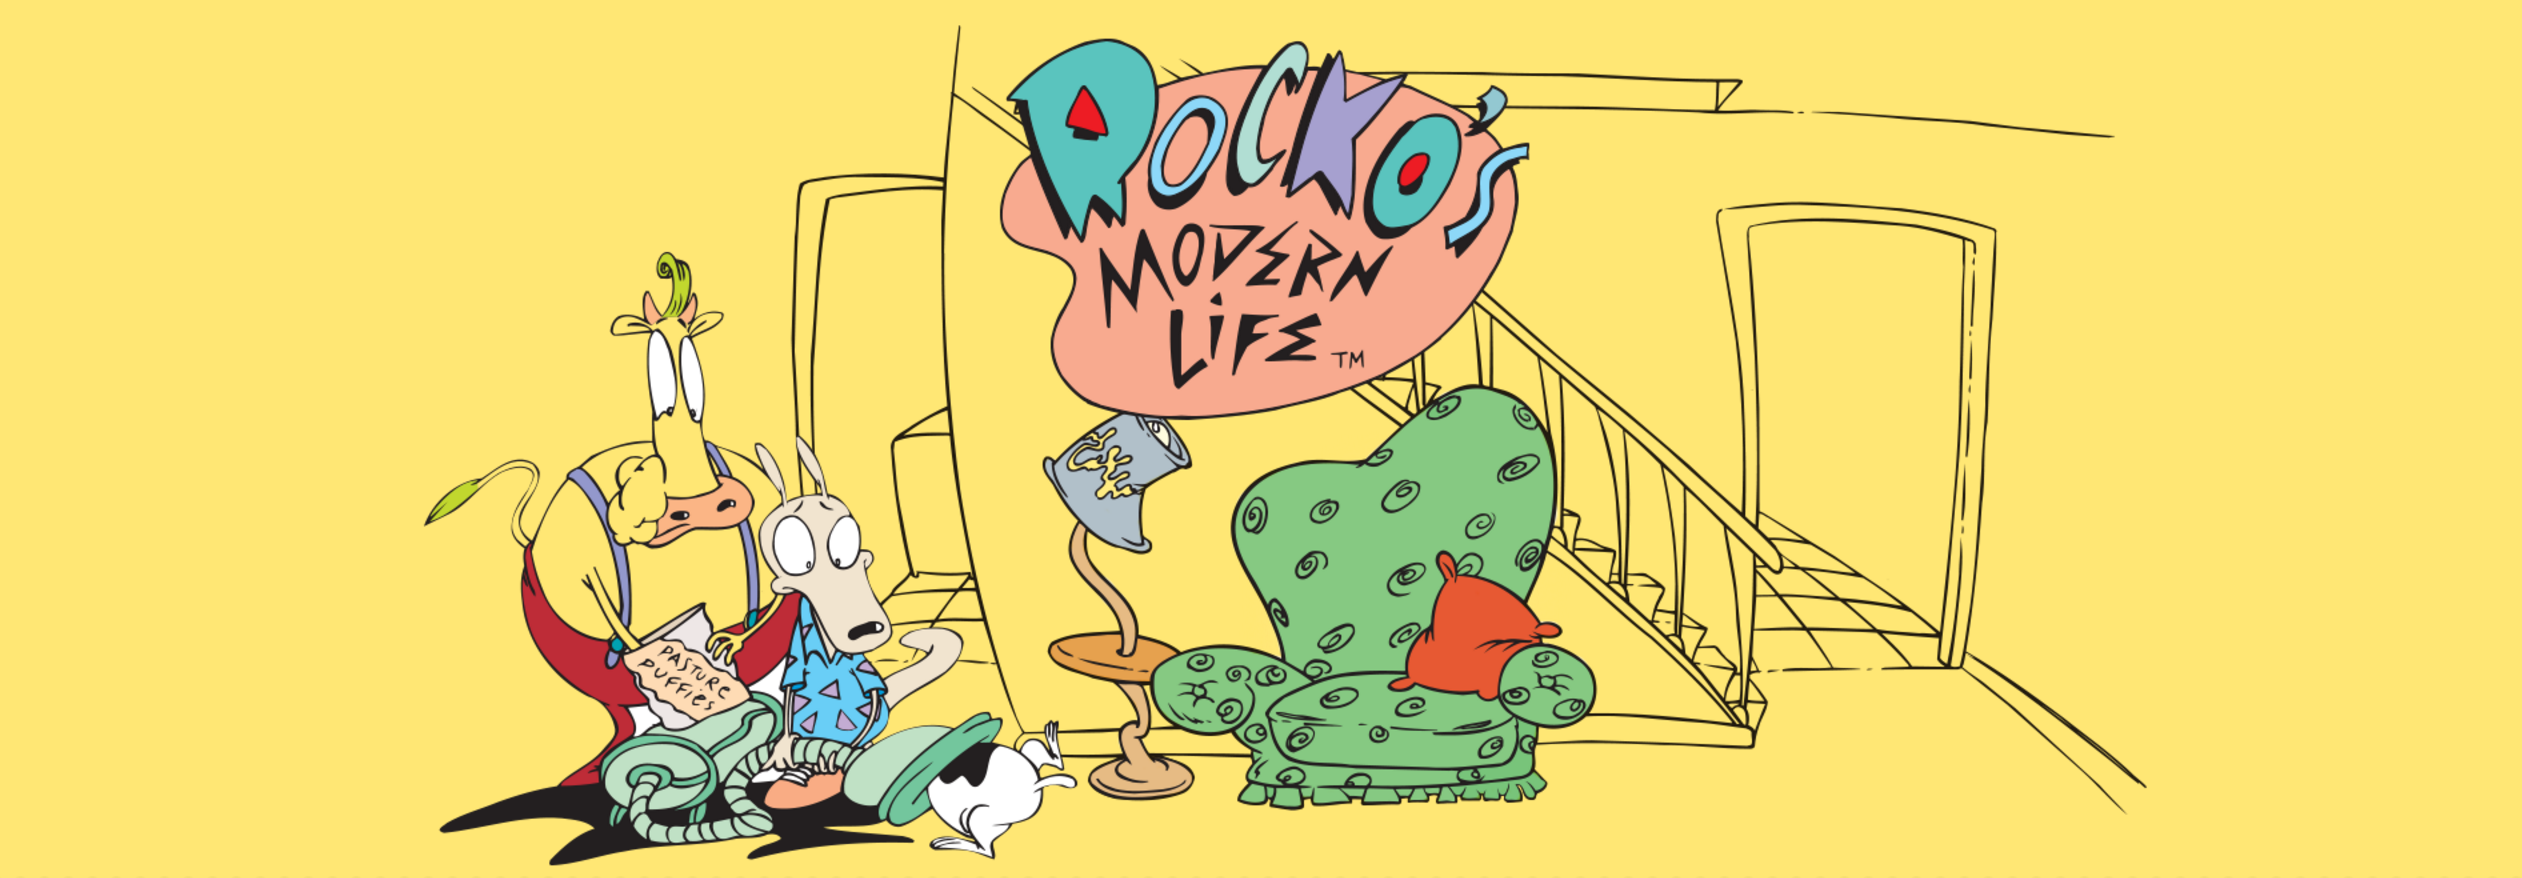 motherboard.vice.com - 'Rocko's Modern Life' Is Making a Comeback